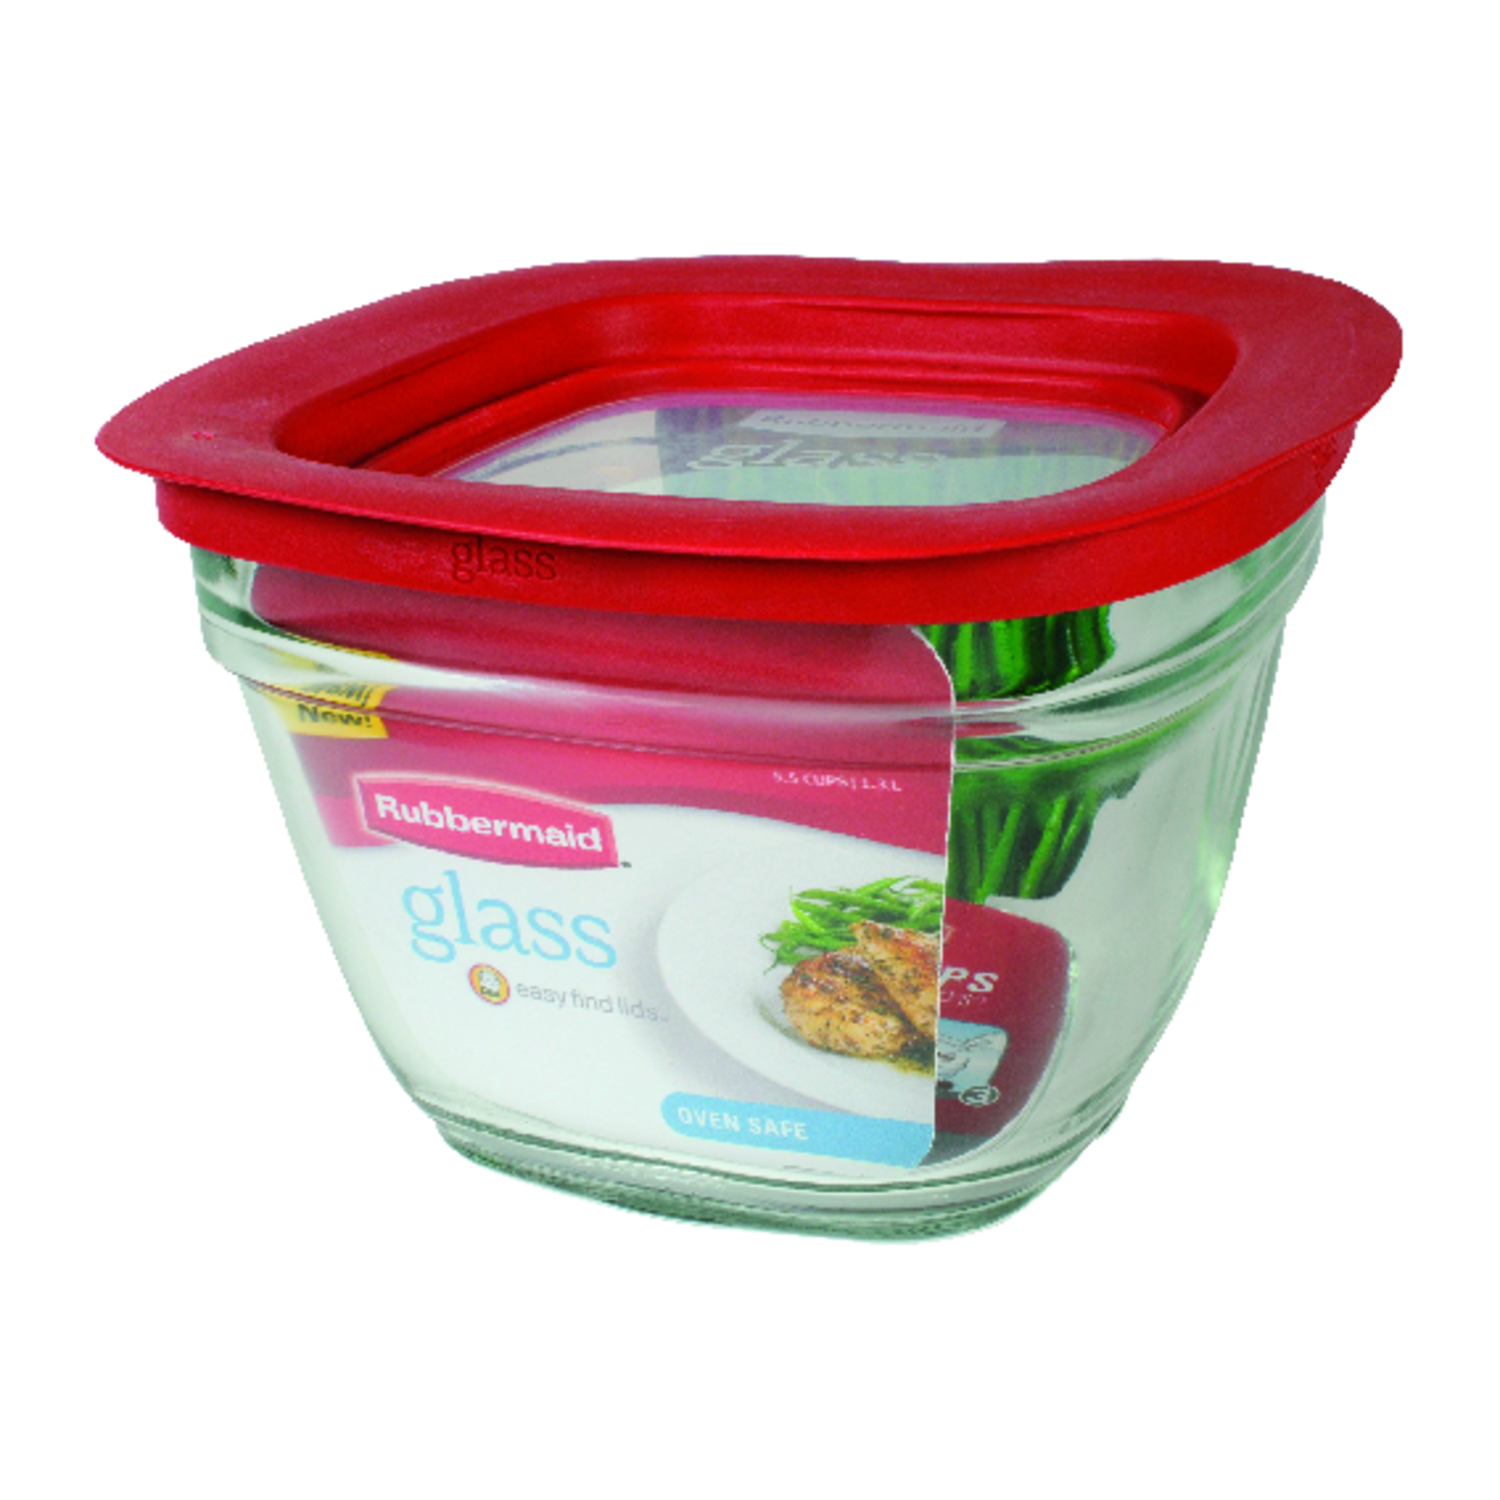 Rubbermaid  Food Storage Container  5.5 cups